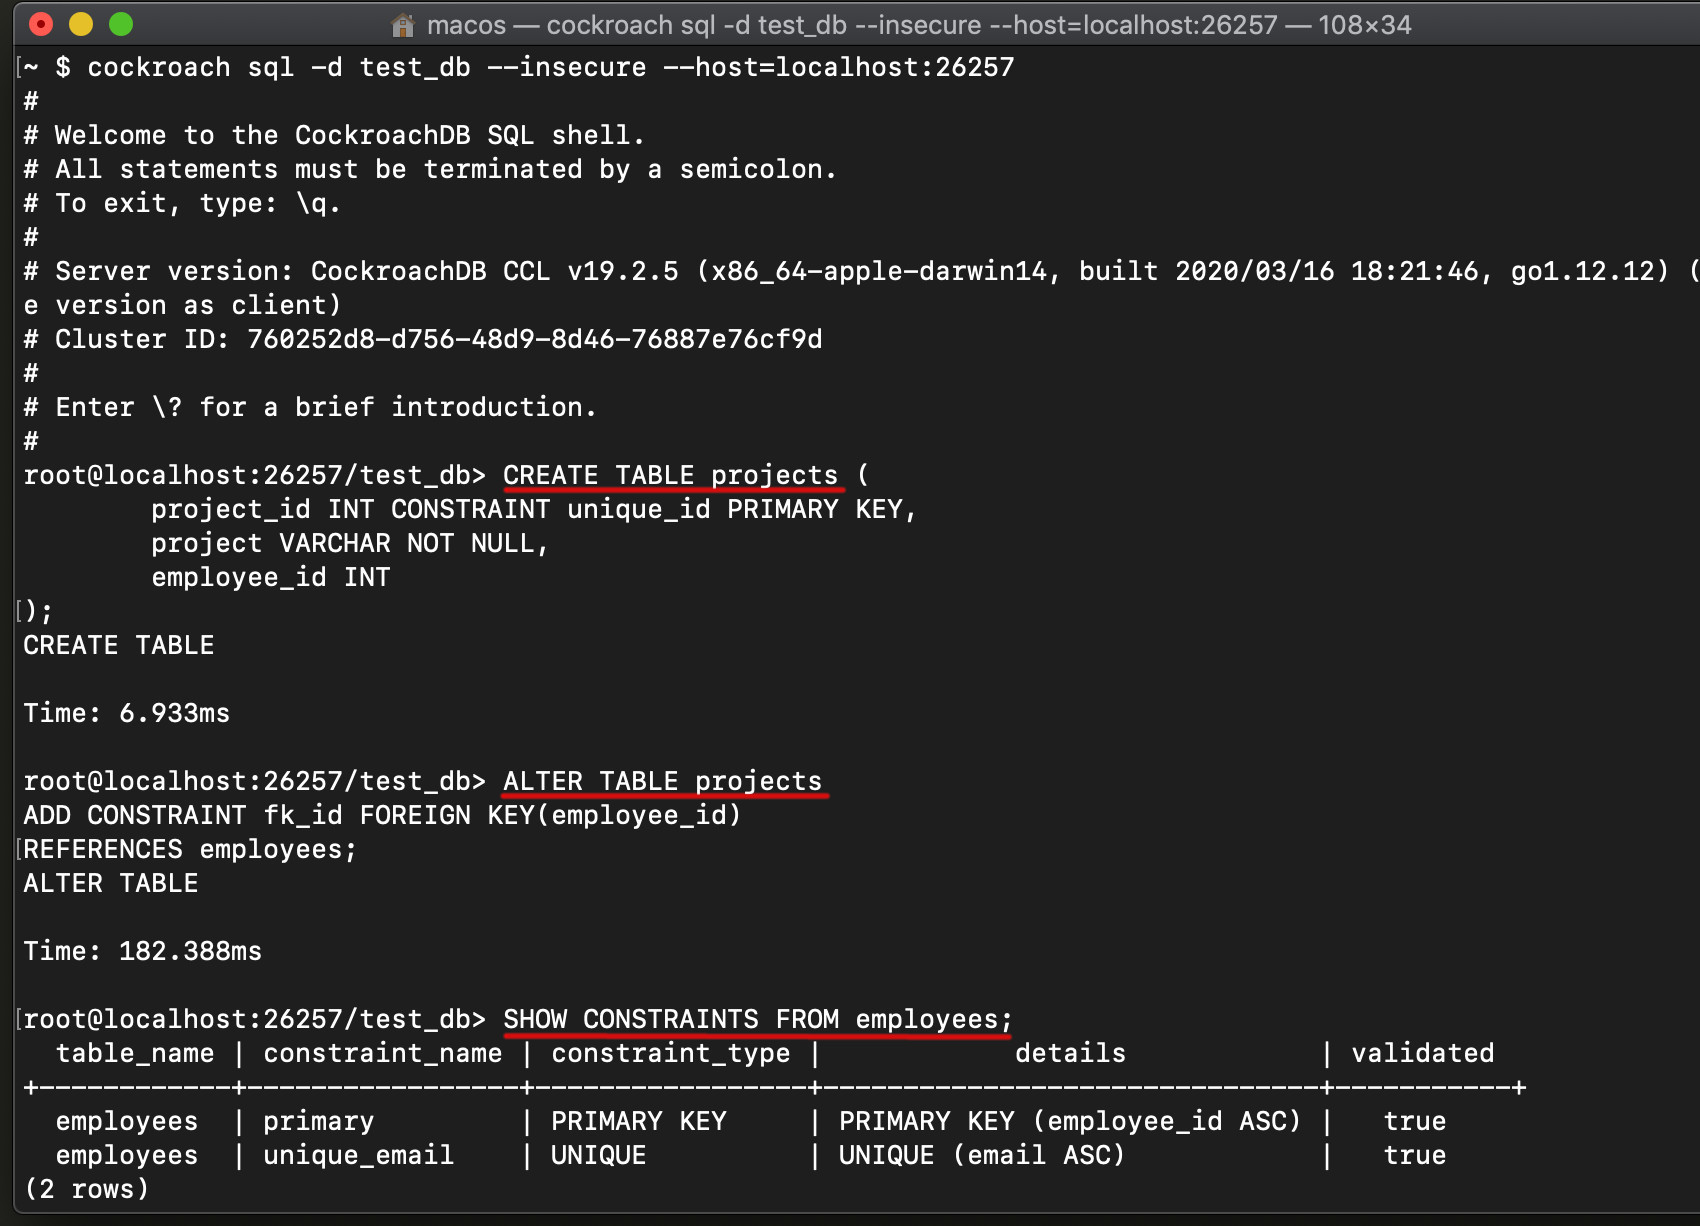 Cockroachdb constraint tutorial to create an SQL table and SHOW CONSTRAINTS